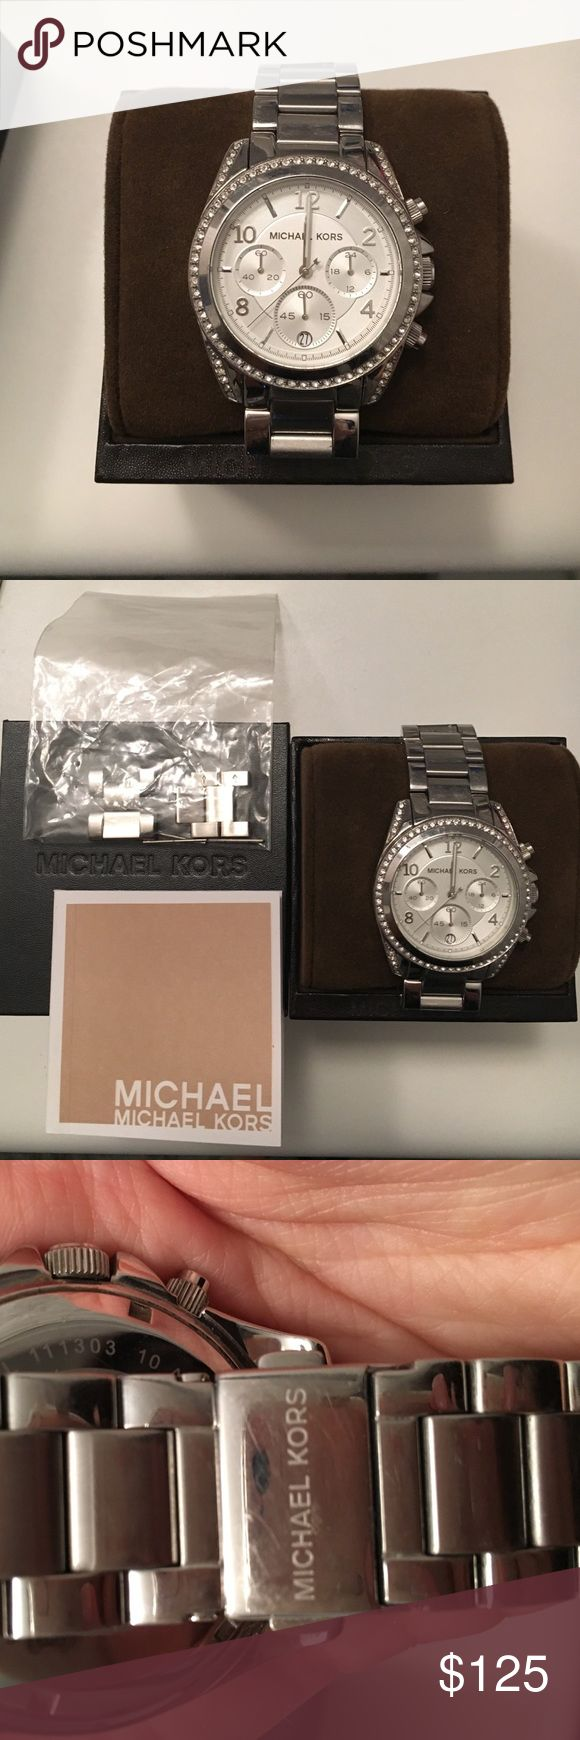 Michael kors silver watch MK5165 Michael kors silver watch. Worn but in great condition.. Few light scratches on back see image. Case diameter 39mm. Comes with original box and extra links! Watch is in need of a new battery. Michael Kors Accessories Watches